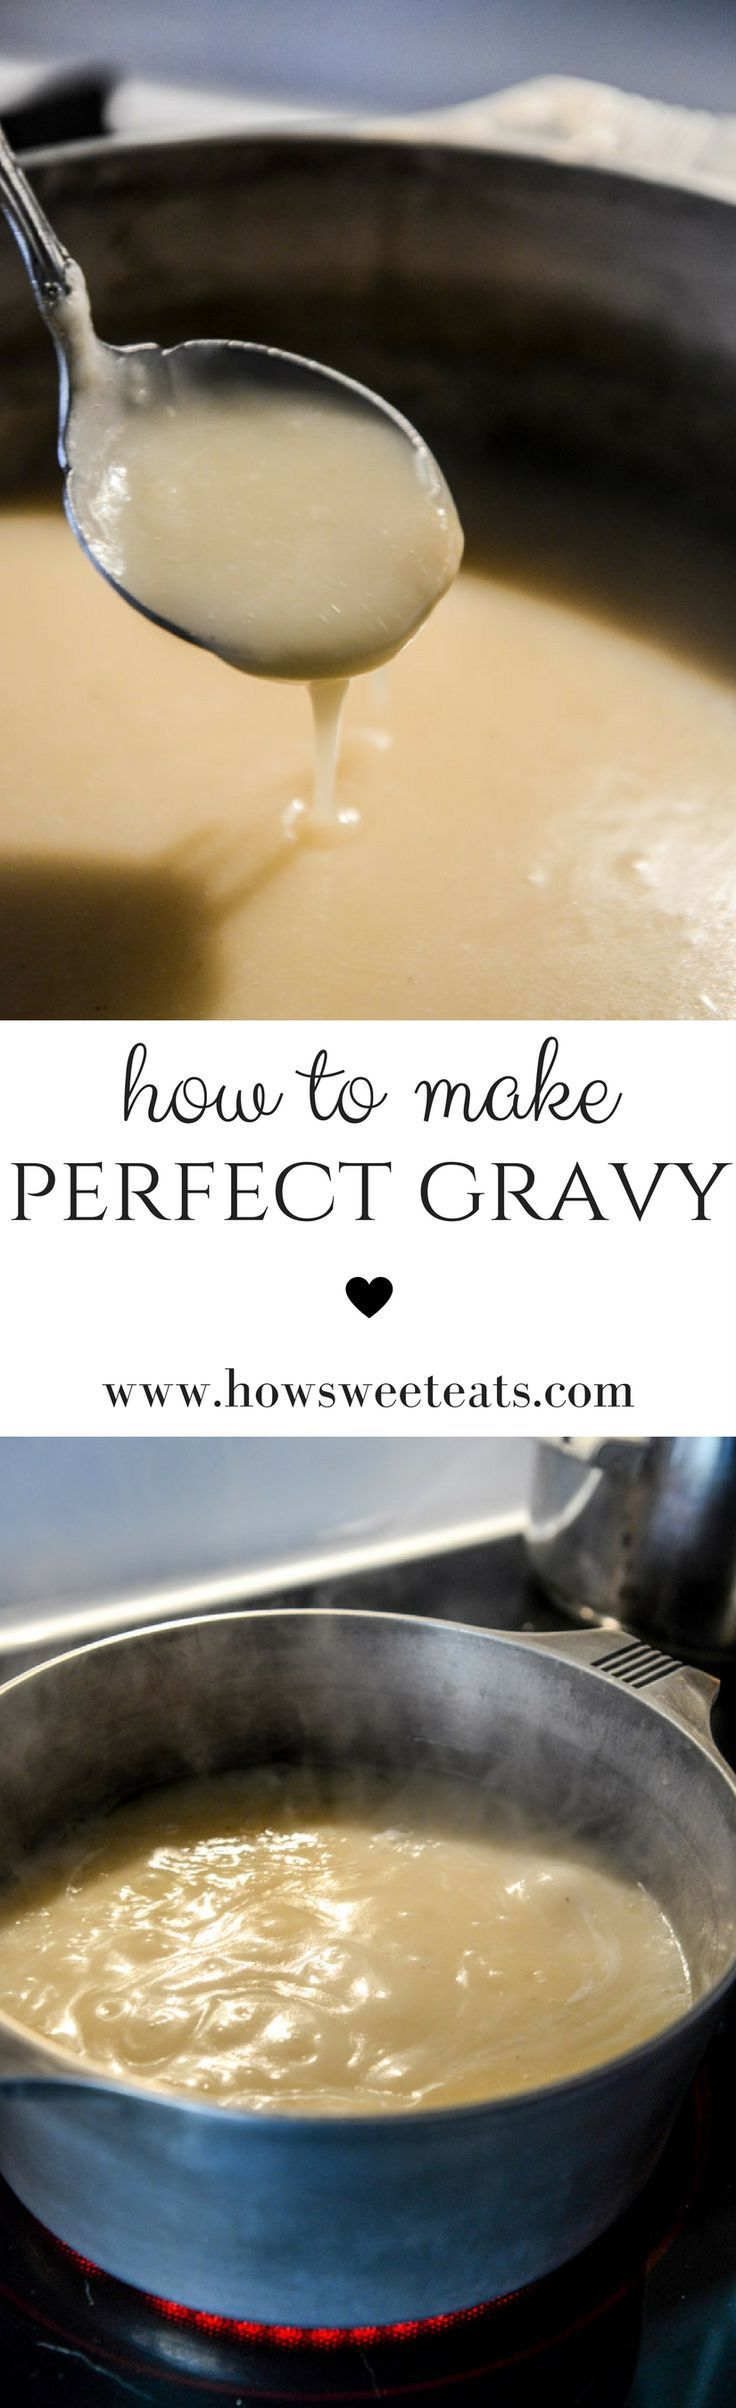 How to Make the BEST Gravy for Thanksgiving! I http://howsweeteats.com /howsweeteats/ #thanksgiving